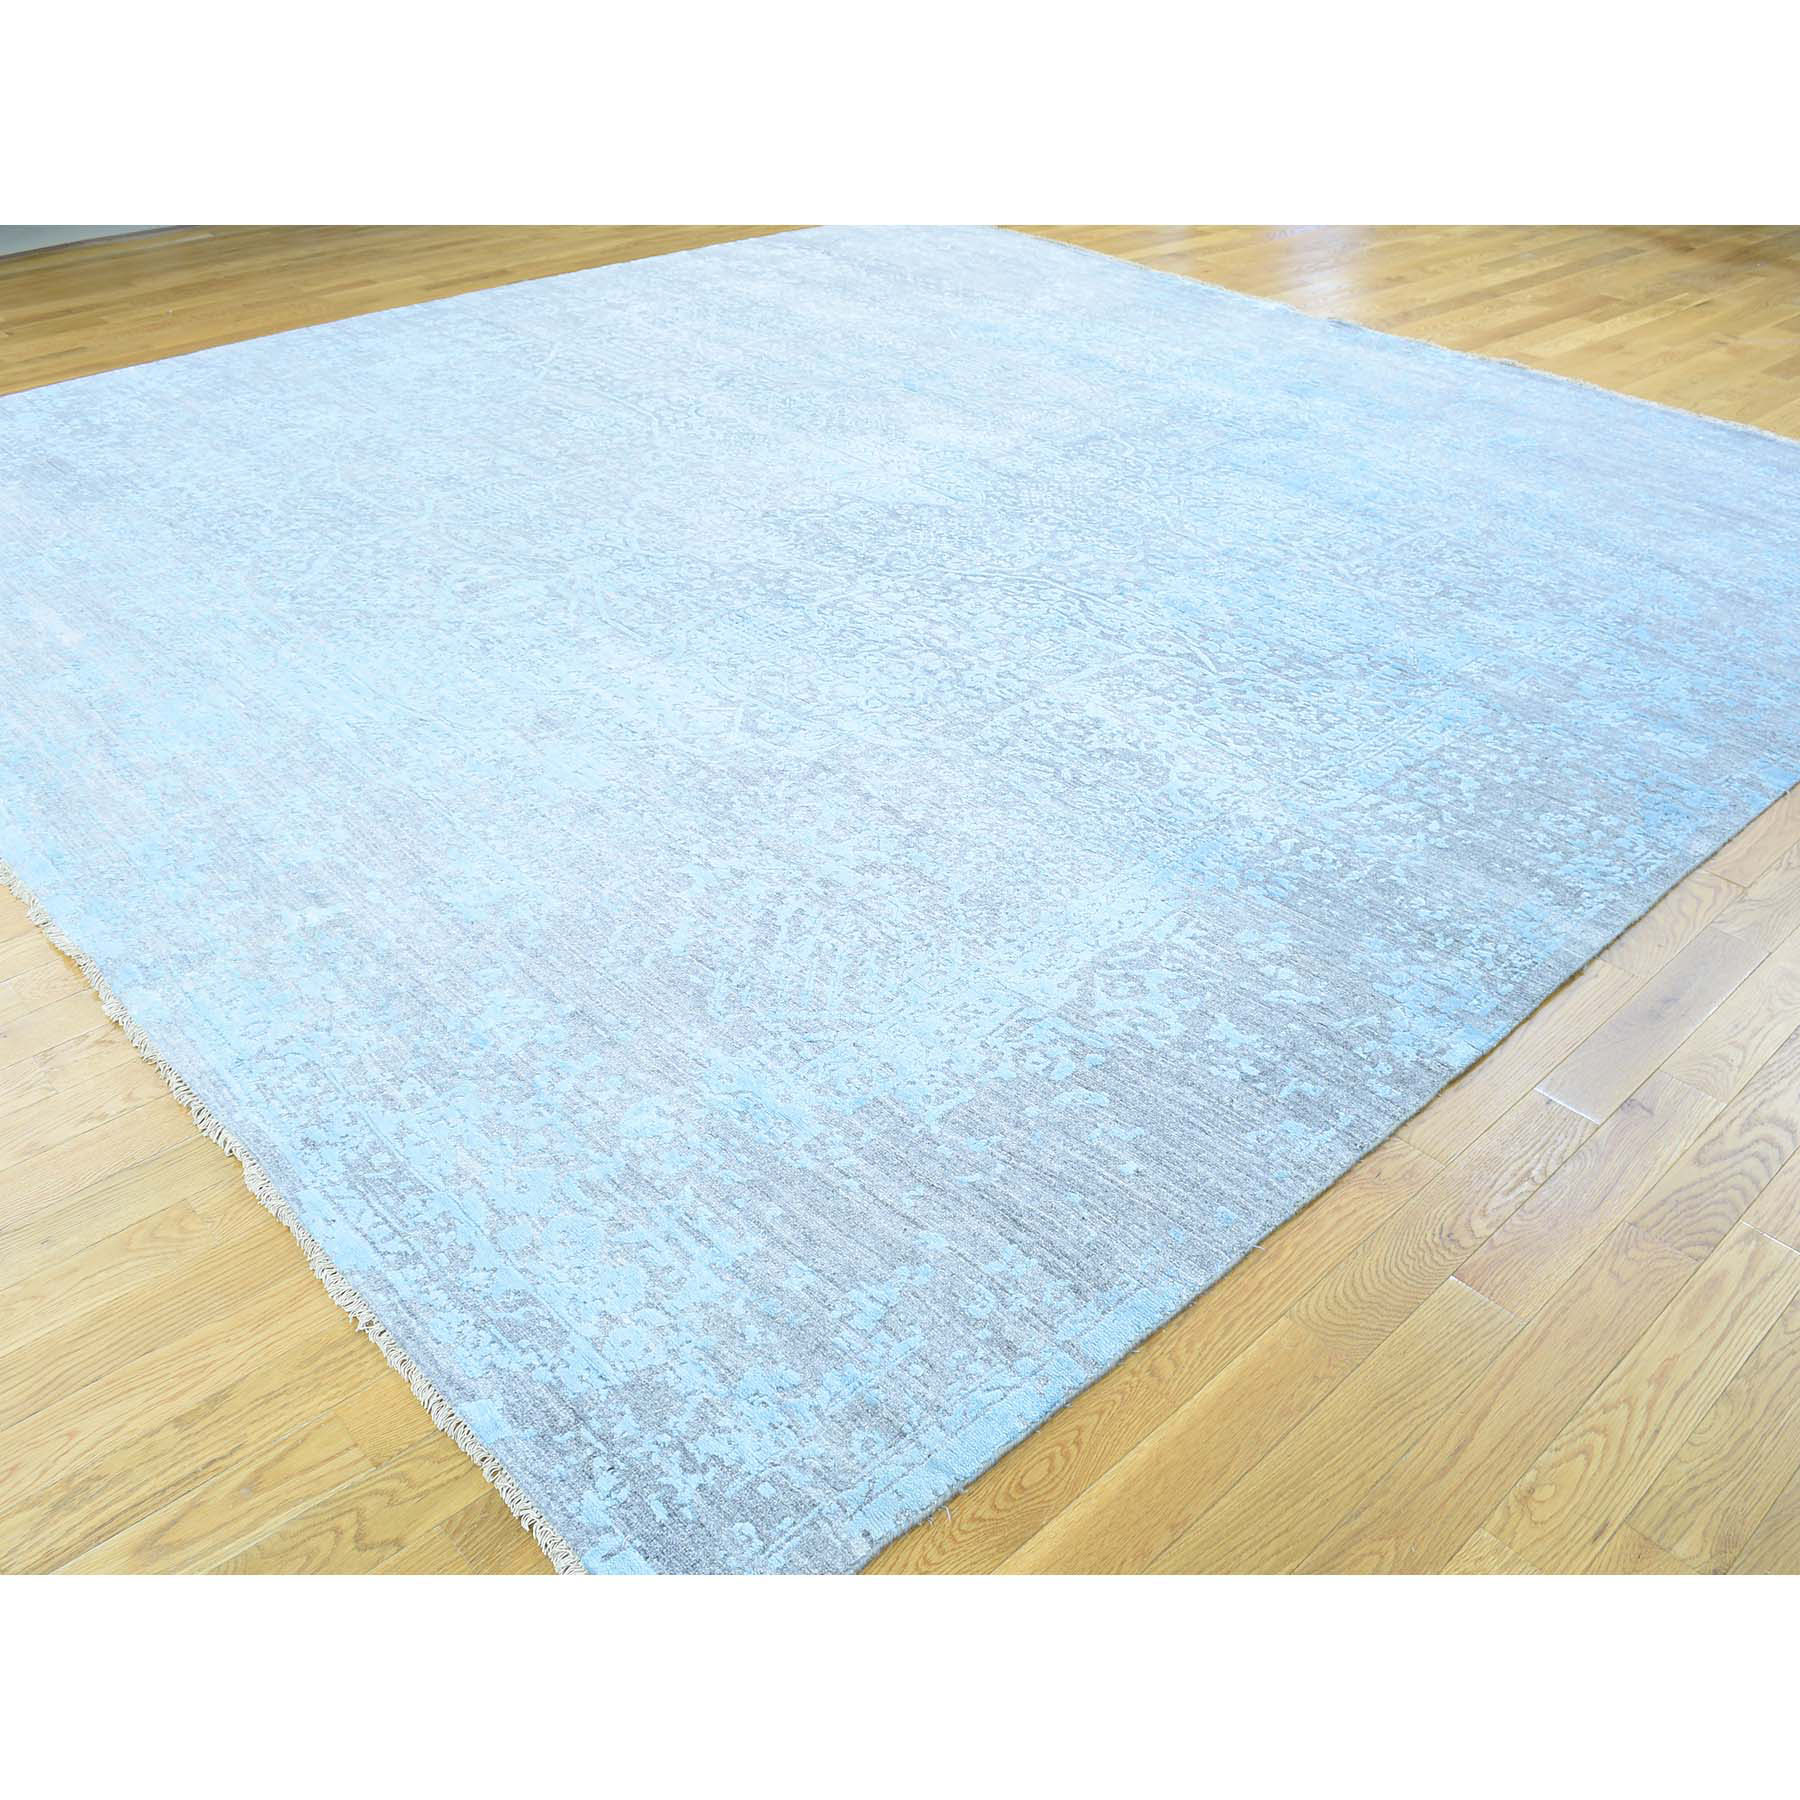 "11'8""x11'8"" Hand-Knotted Broken Persian Design Square Wool And Silk Rug"